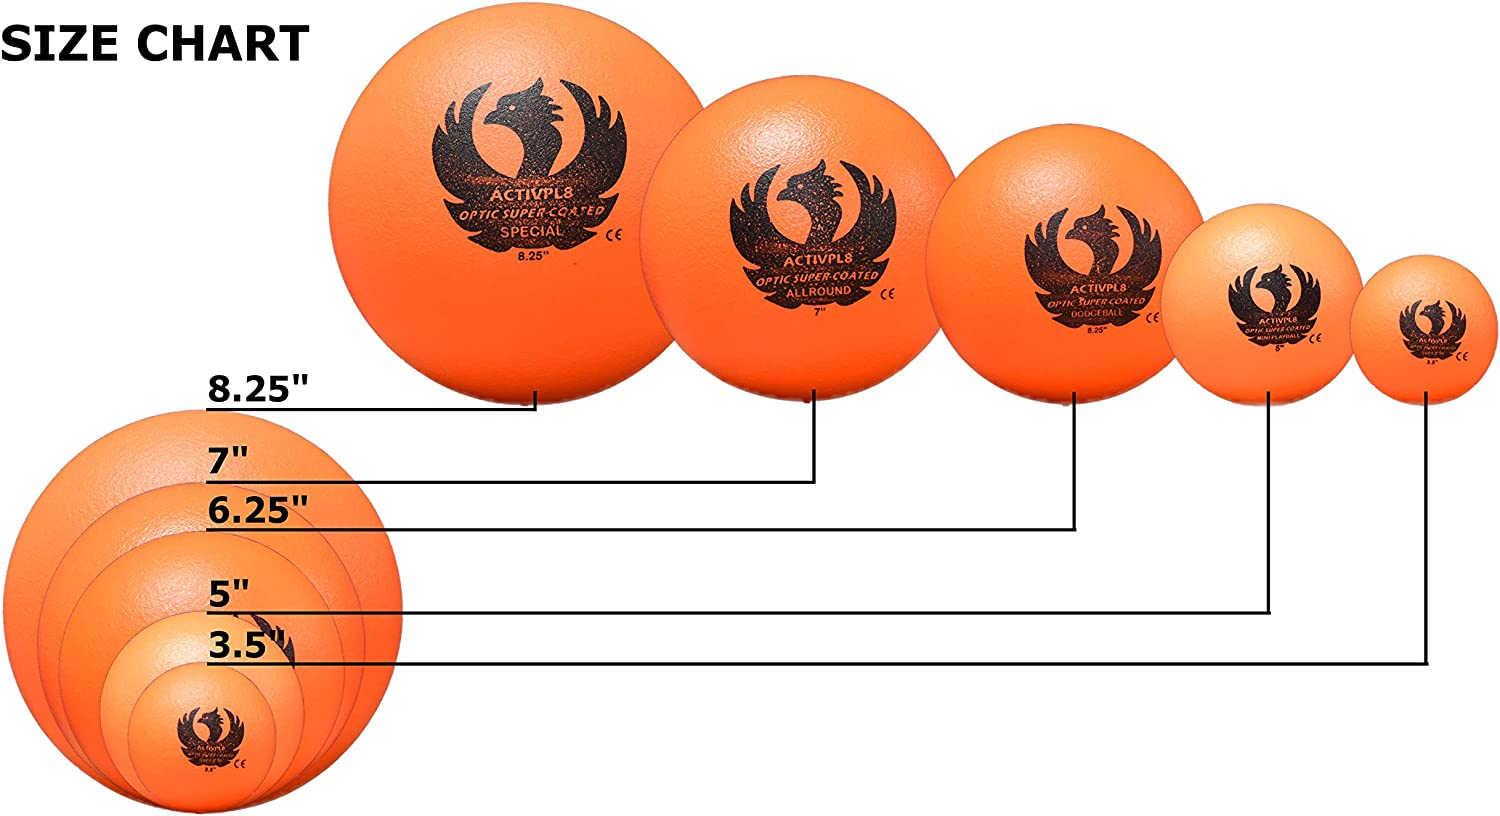 No-Sting Balls for Playground Games Coated Foam Balls 6.25 Inch Set of 6 ARISE Optic Super Coated Dodgeball Dodgeball Set Soft Touch Foam Balls